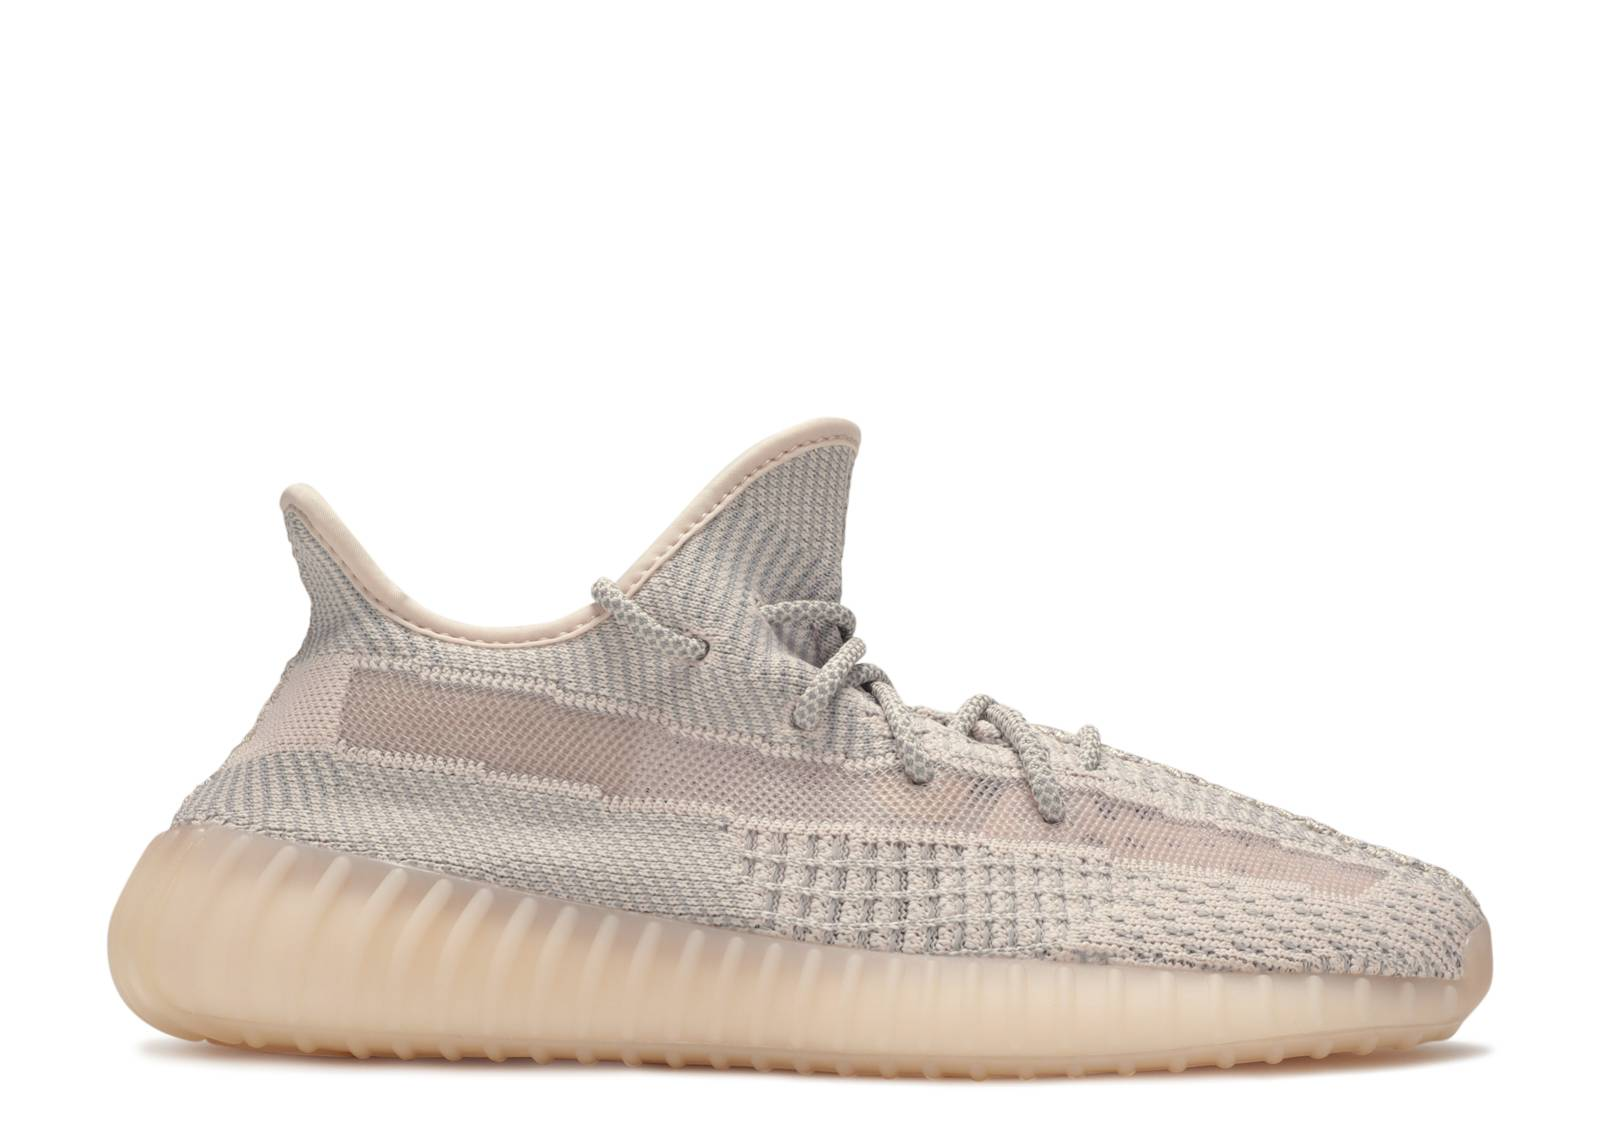 newest f0692 619a7 yeezy boost 350 v2